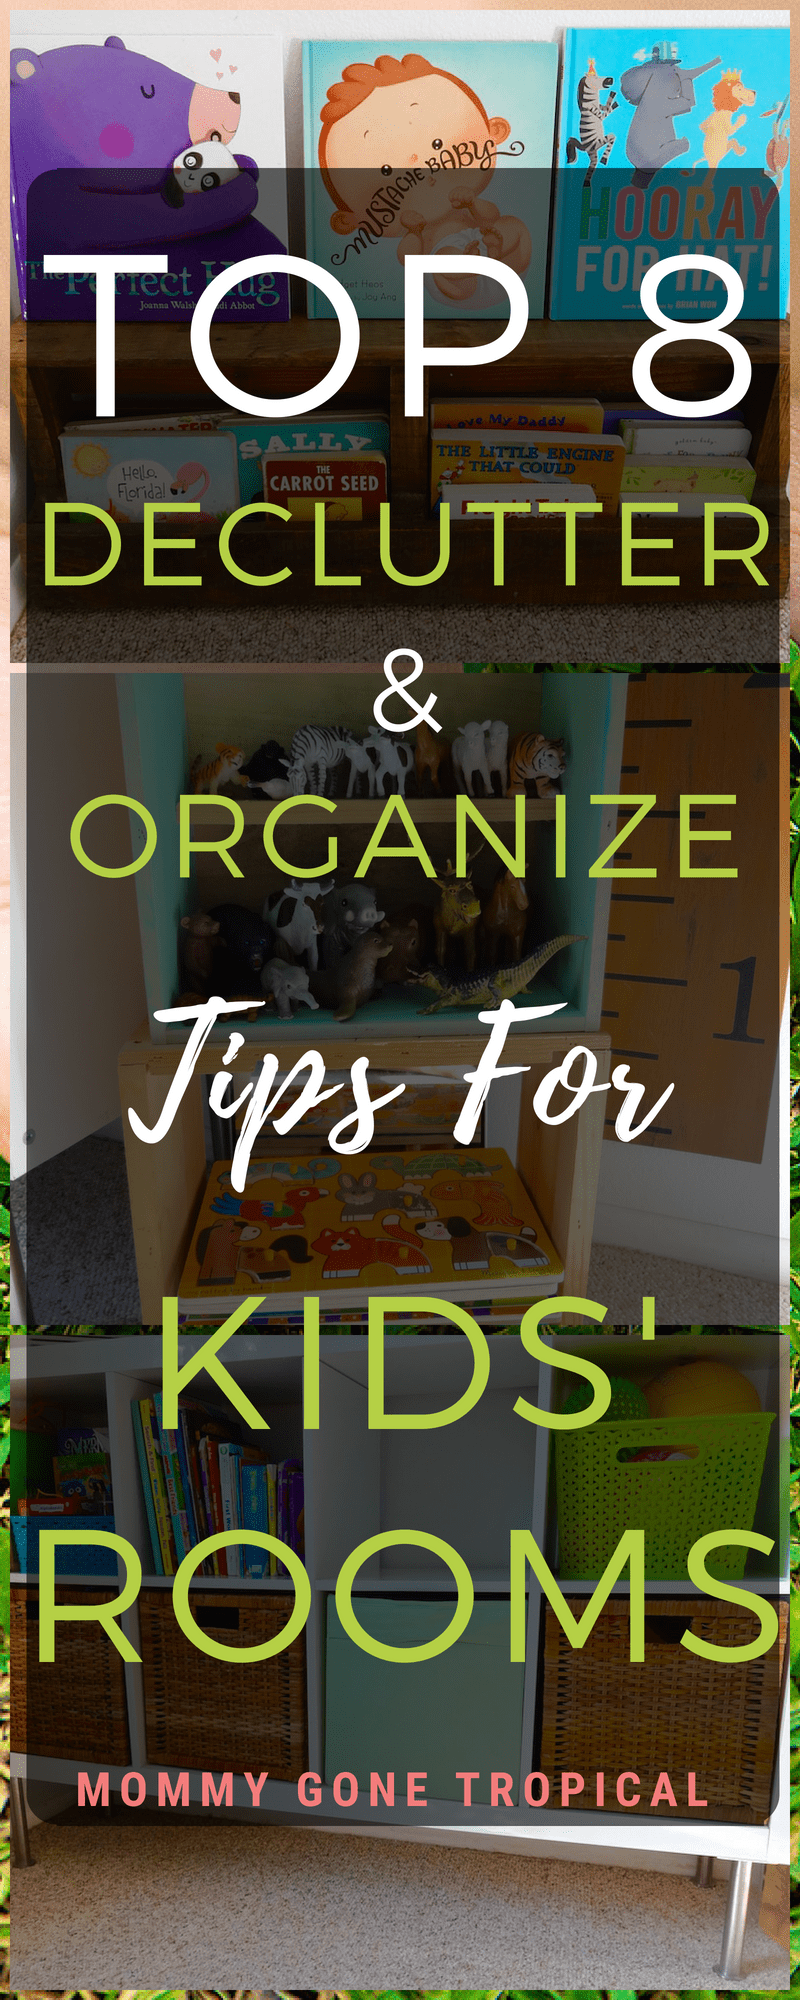 Top 8 Decluttering And Organizing Tips For Kids' Rooms is part of Organization Hacks Kids - artworks, and clothes  Keep, store, donate or toss the items